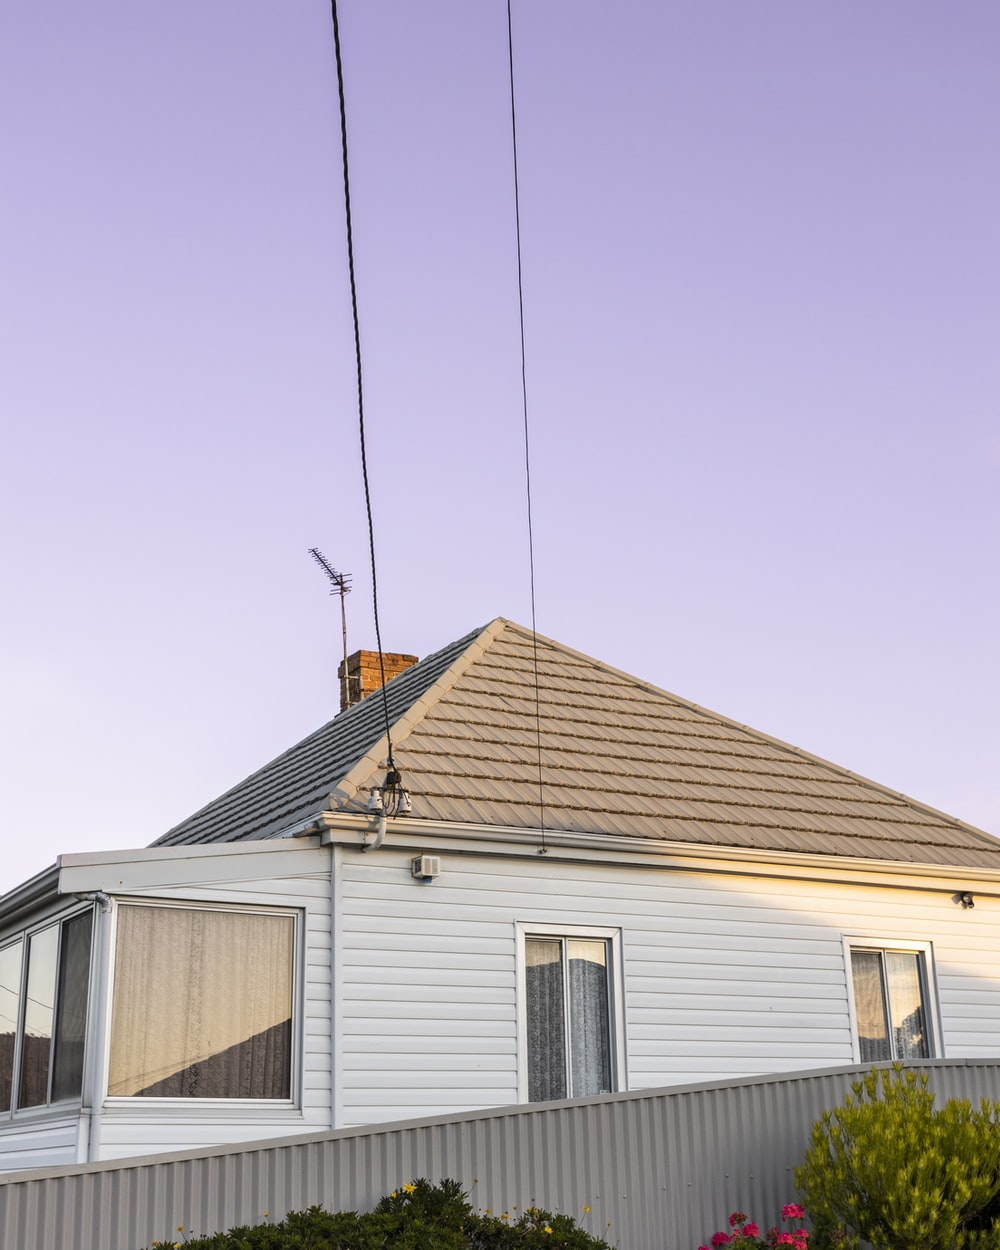 white and brown wooden house under blue sky during daytime